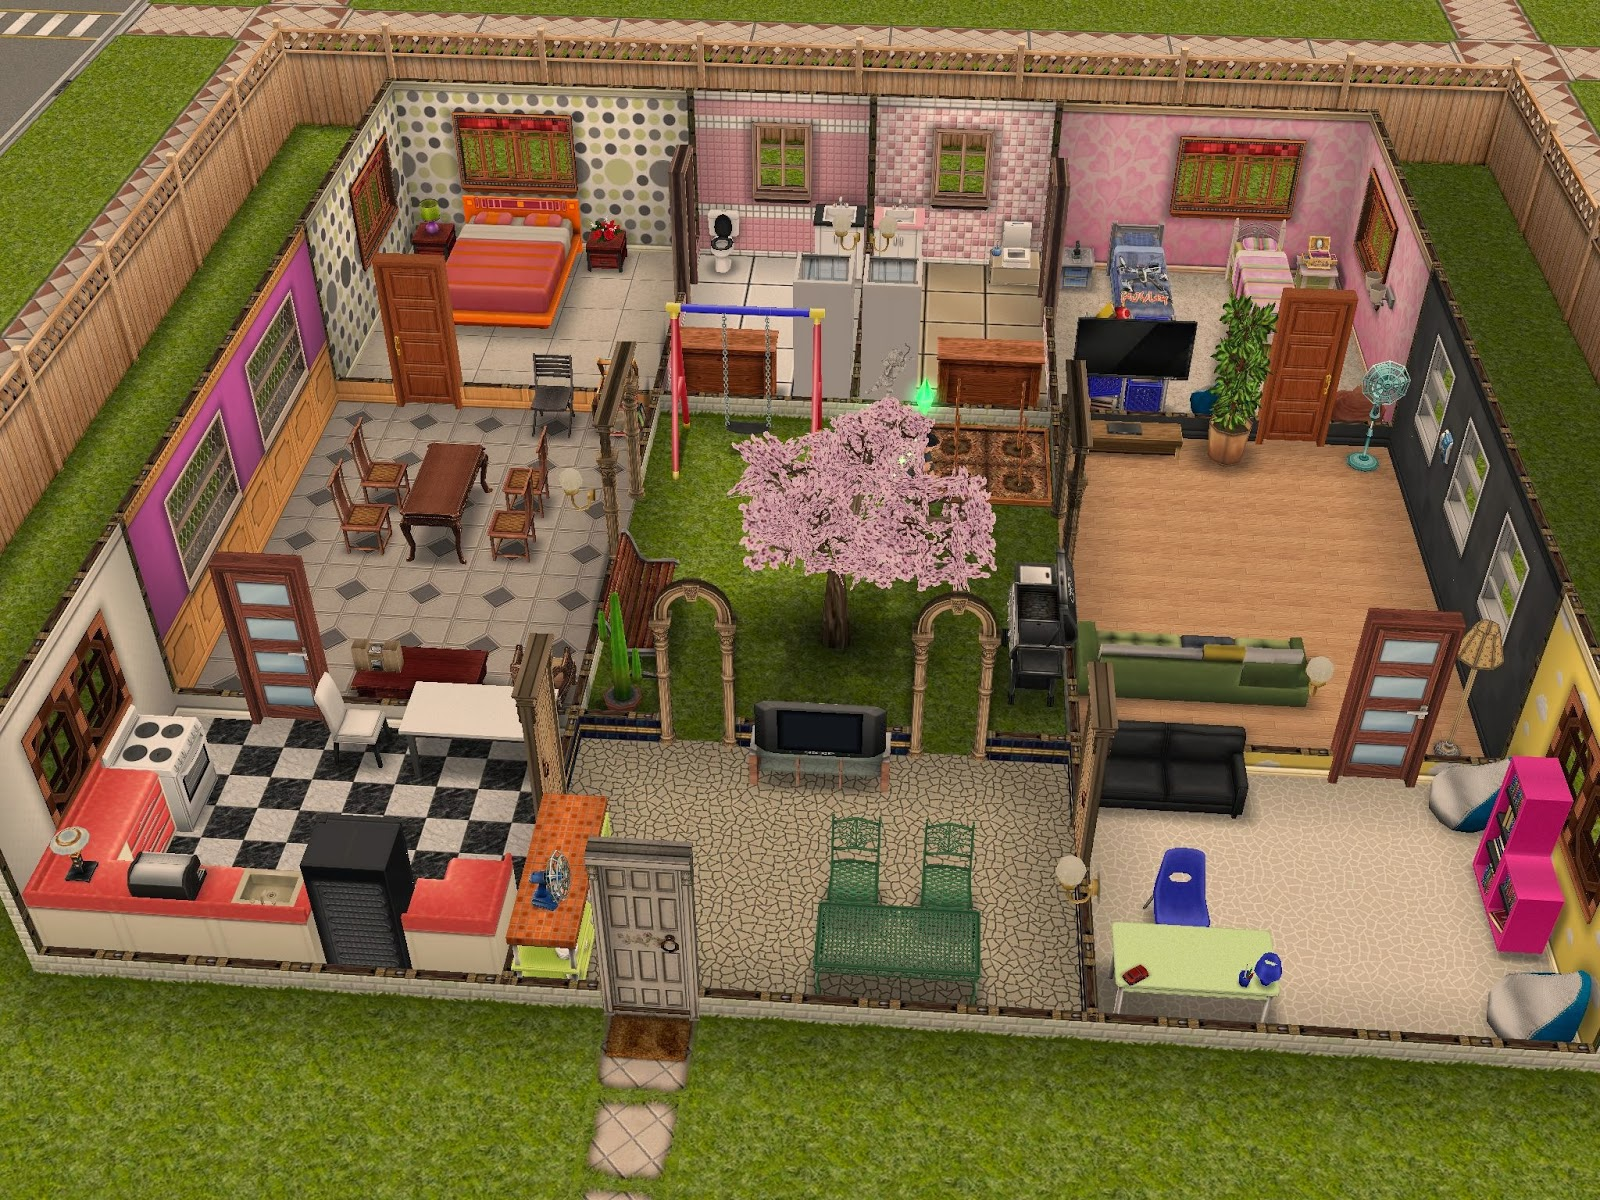 Housing Ideas the sims freeplay: weird housing ideas | all the world's a game